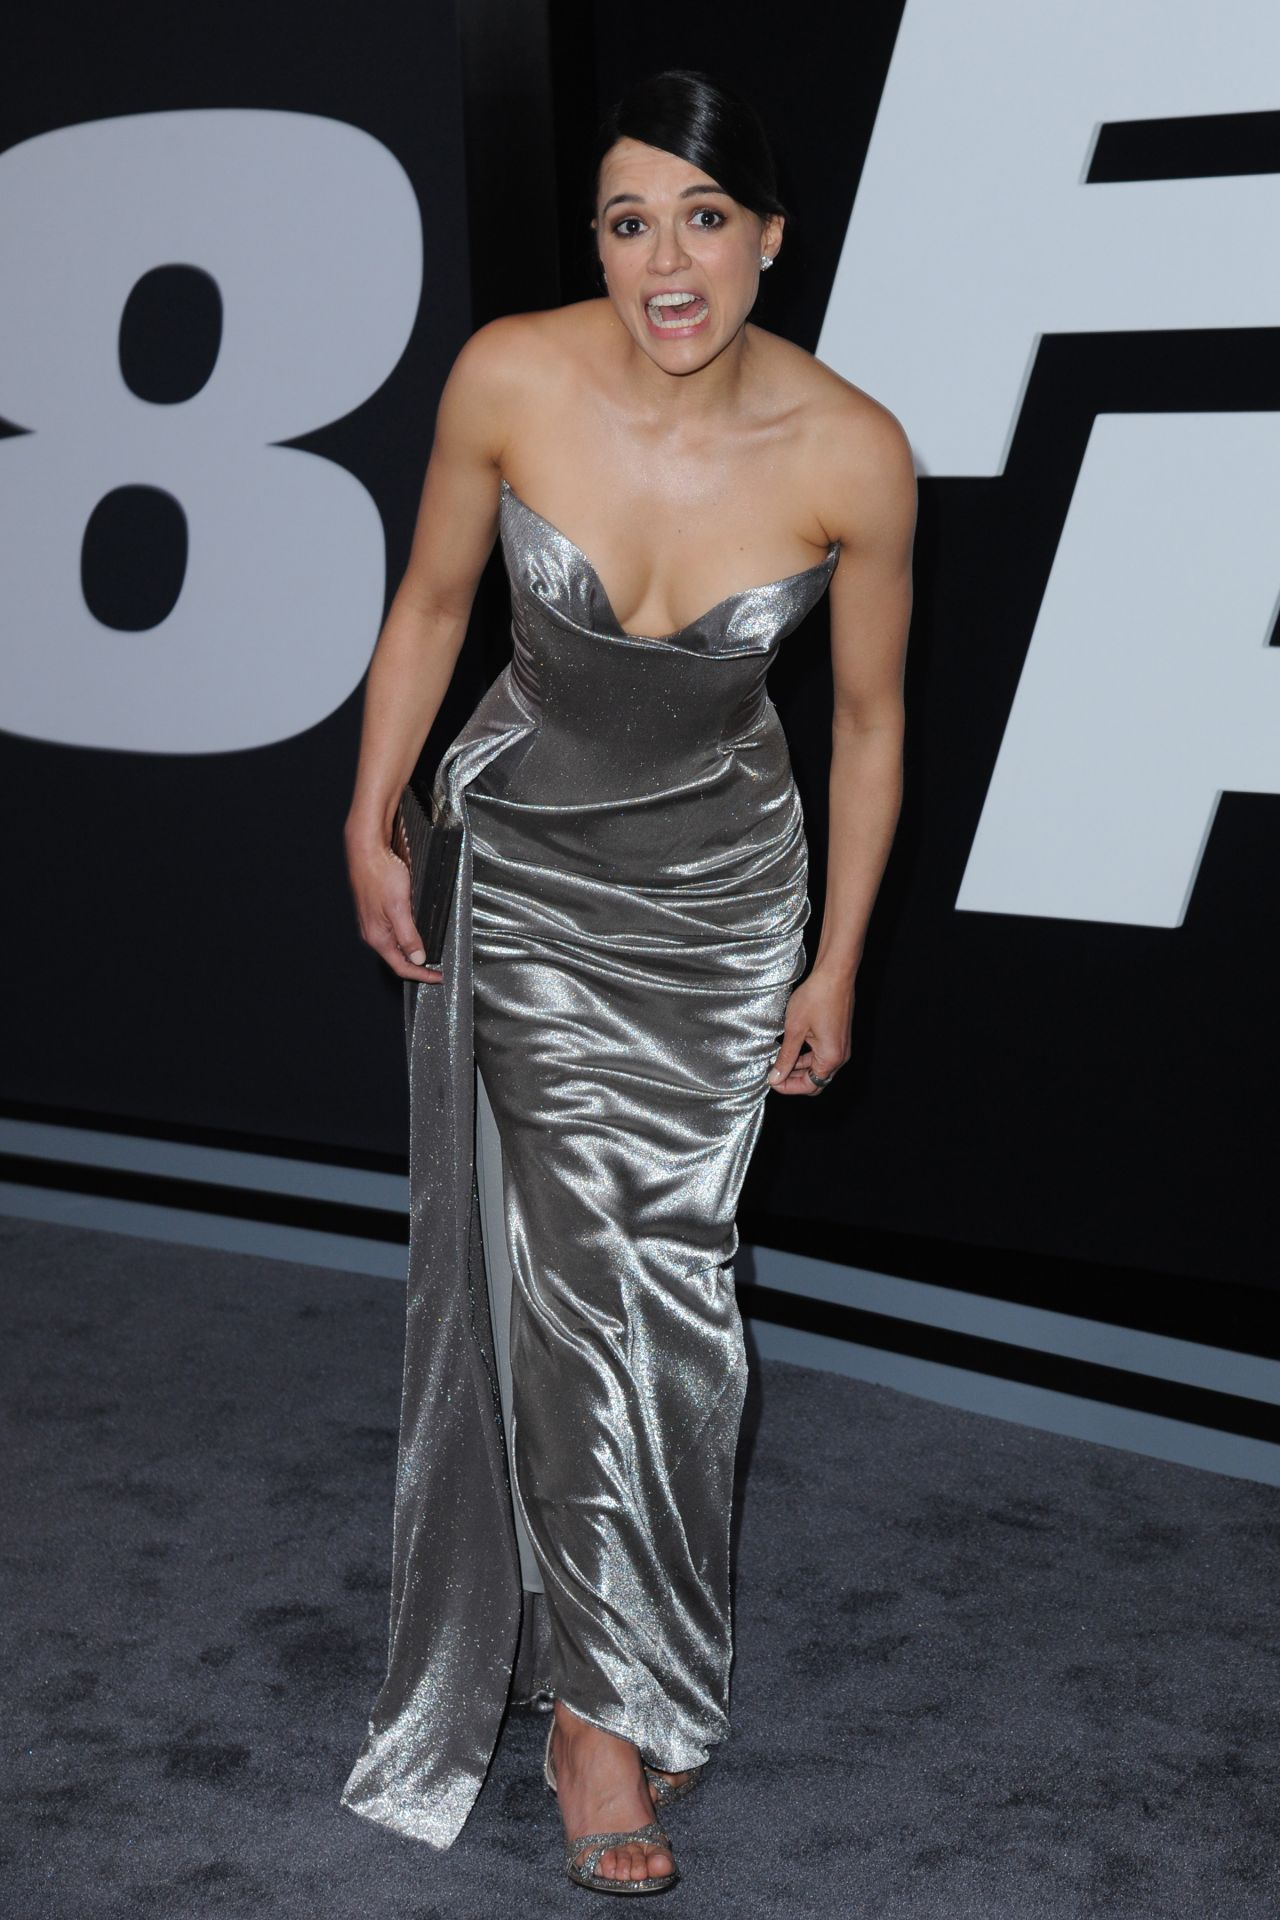 Michelle Rodriguez Fate Of The Furious Pemiere In New